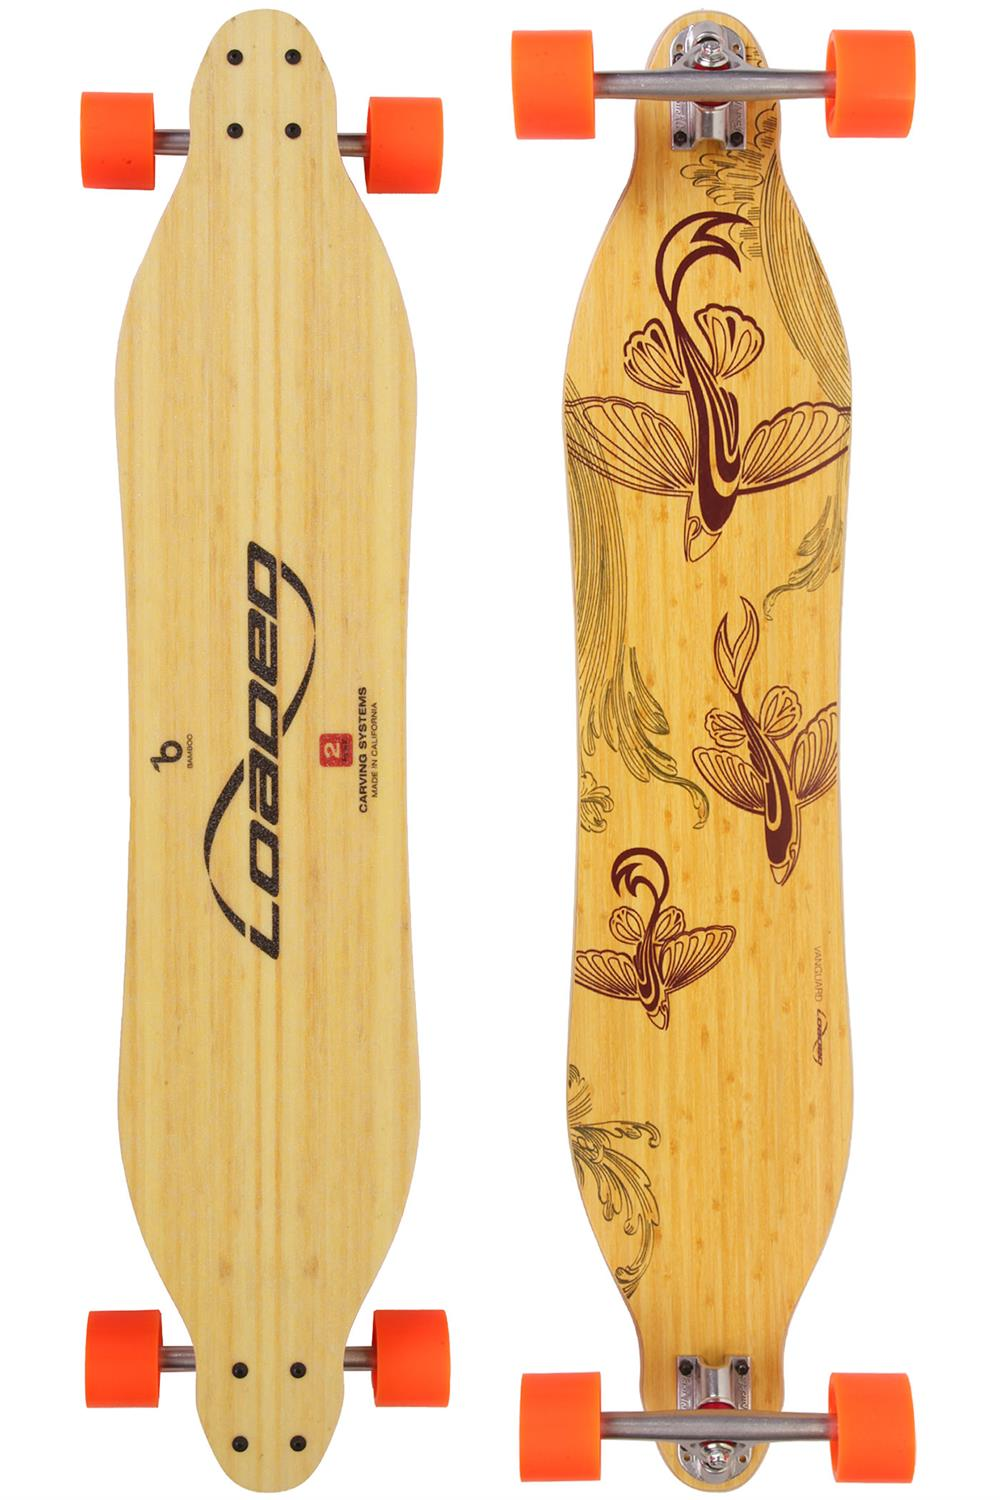 Acheter Skateboard Loaded Vanguard Bamboo Longboard